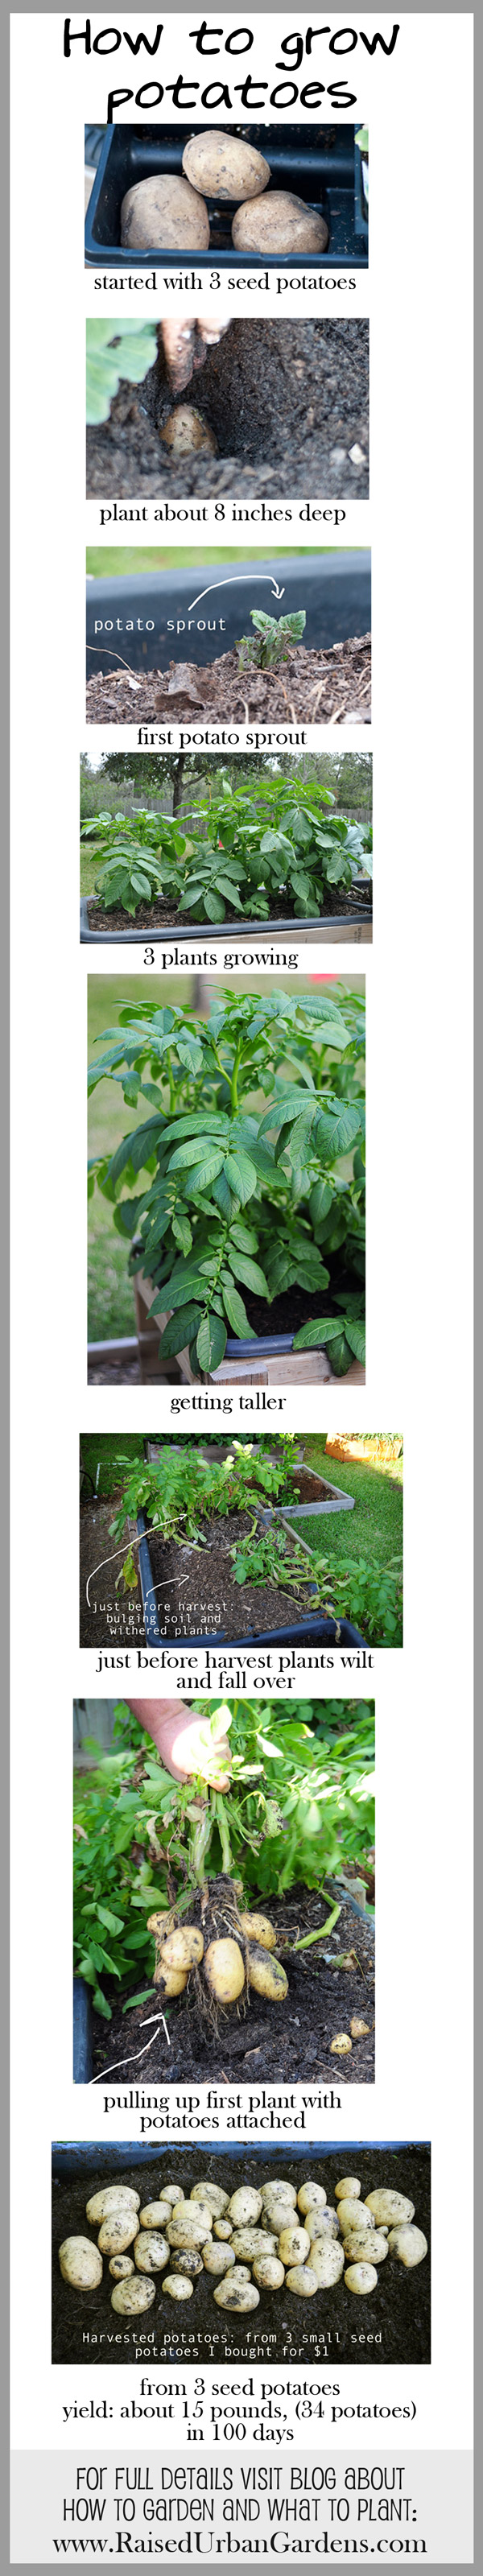 how-to-grow-potatoes-tall-pin